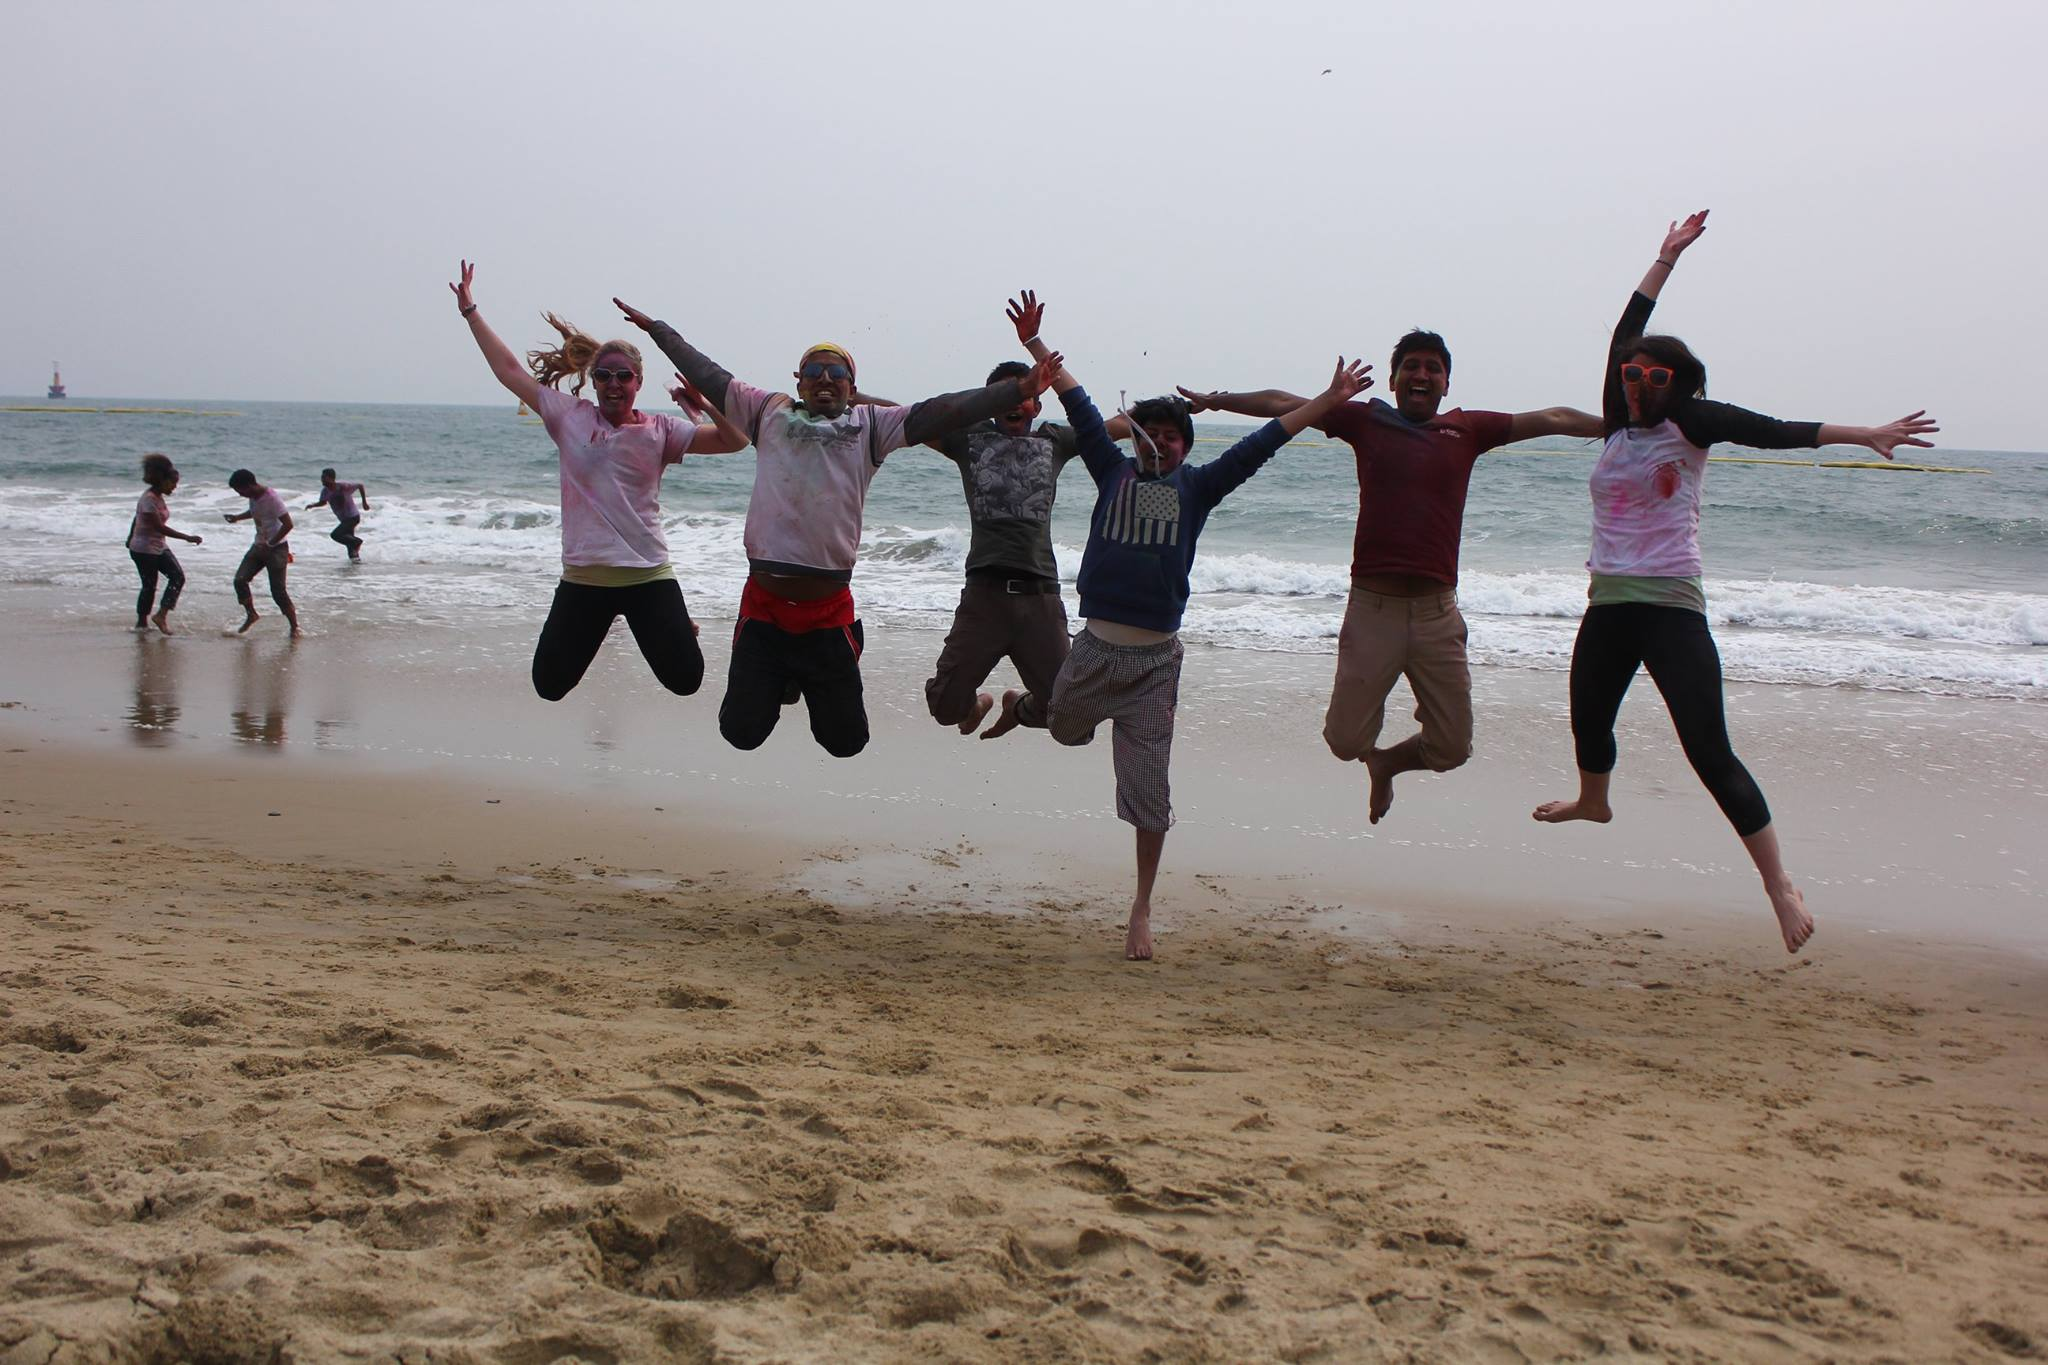 Celebrating Holi at Haeundae beach